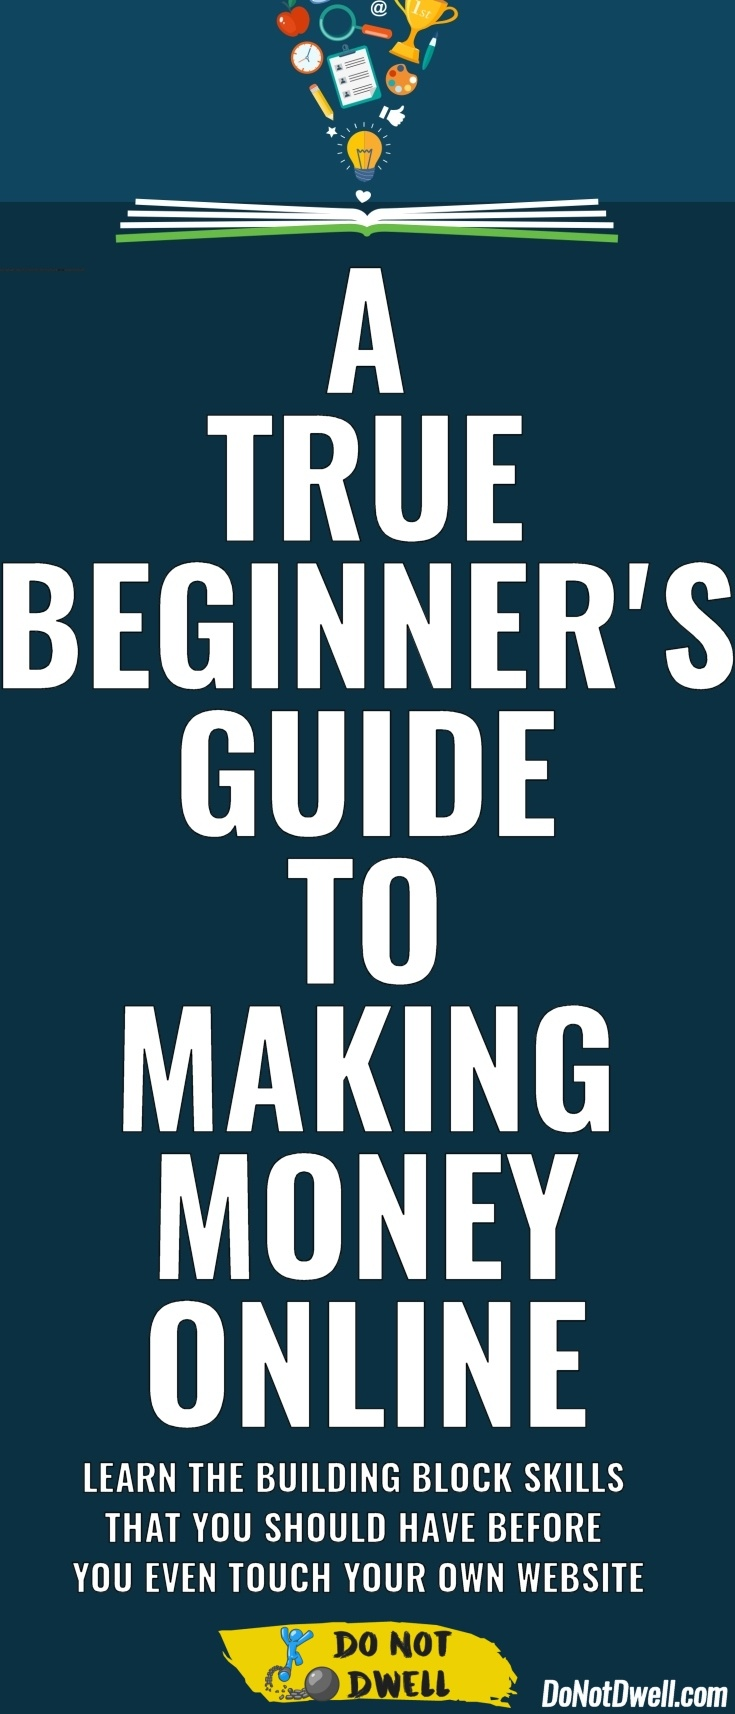 A True Beginner's Guide: How to Make Money Online